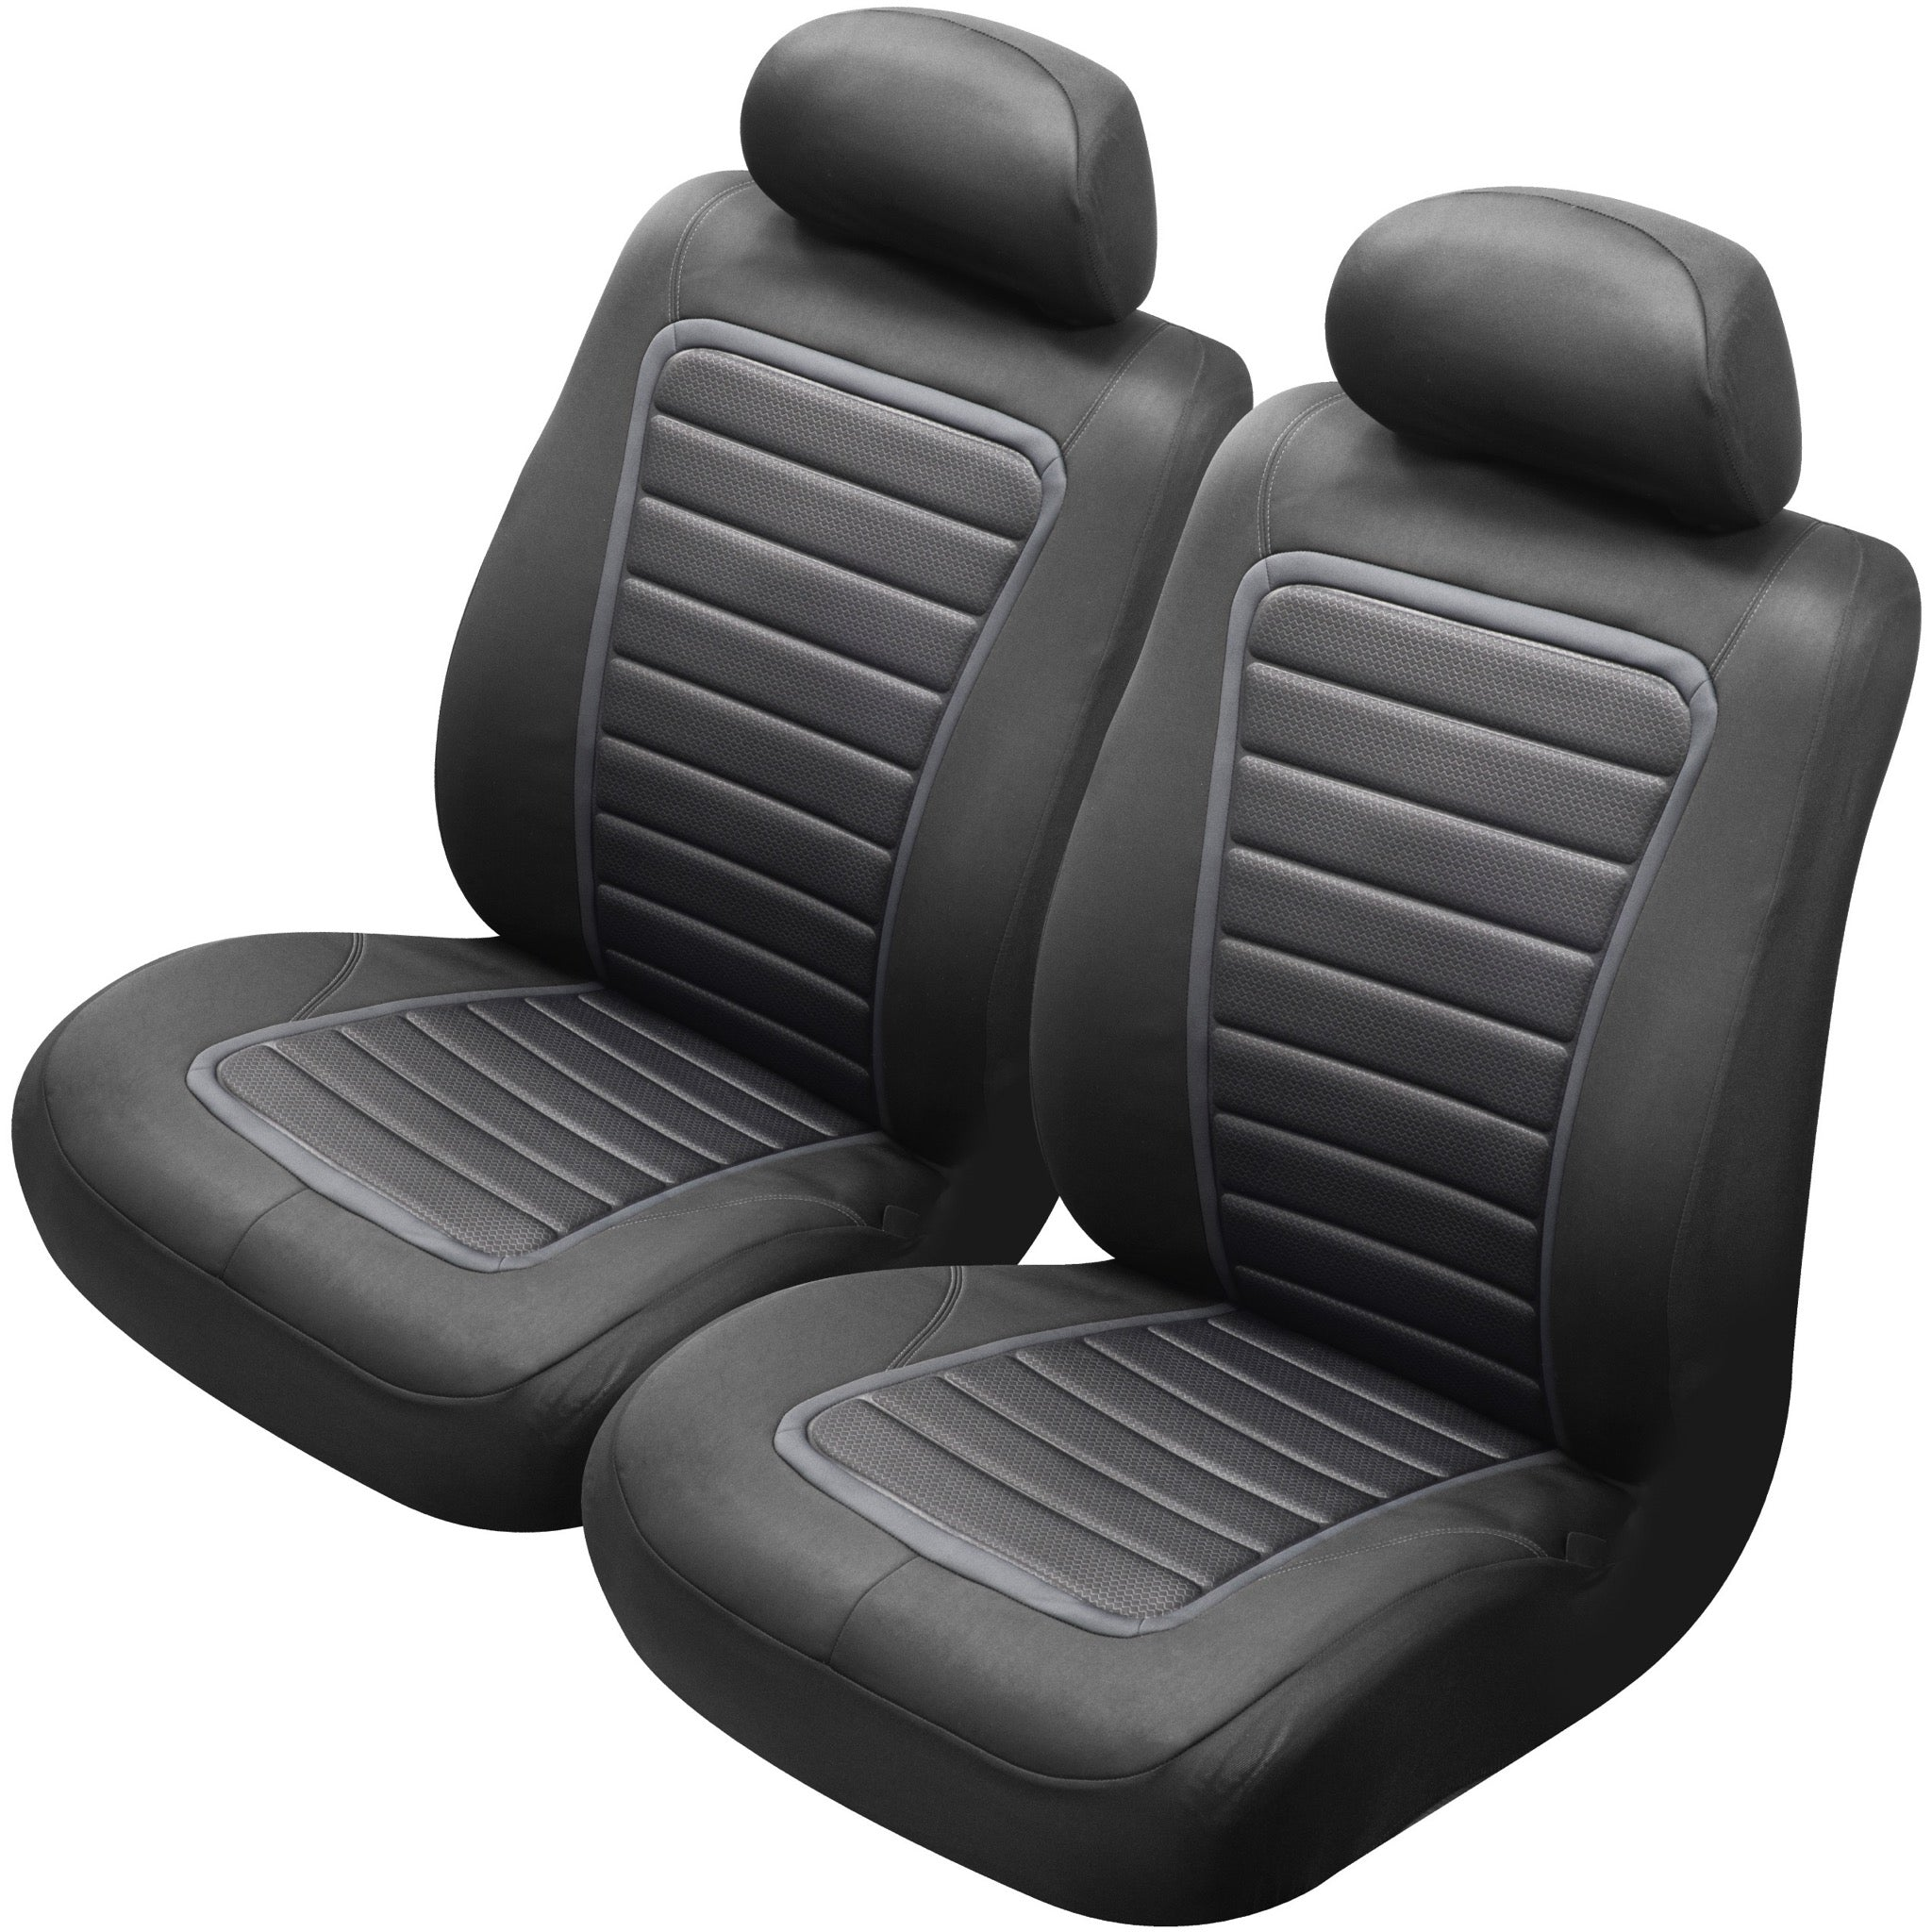 Wetsuit Seat Covers With DRI LOCK Technology